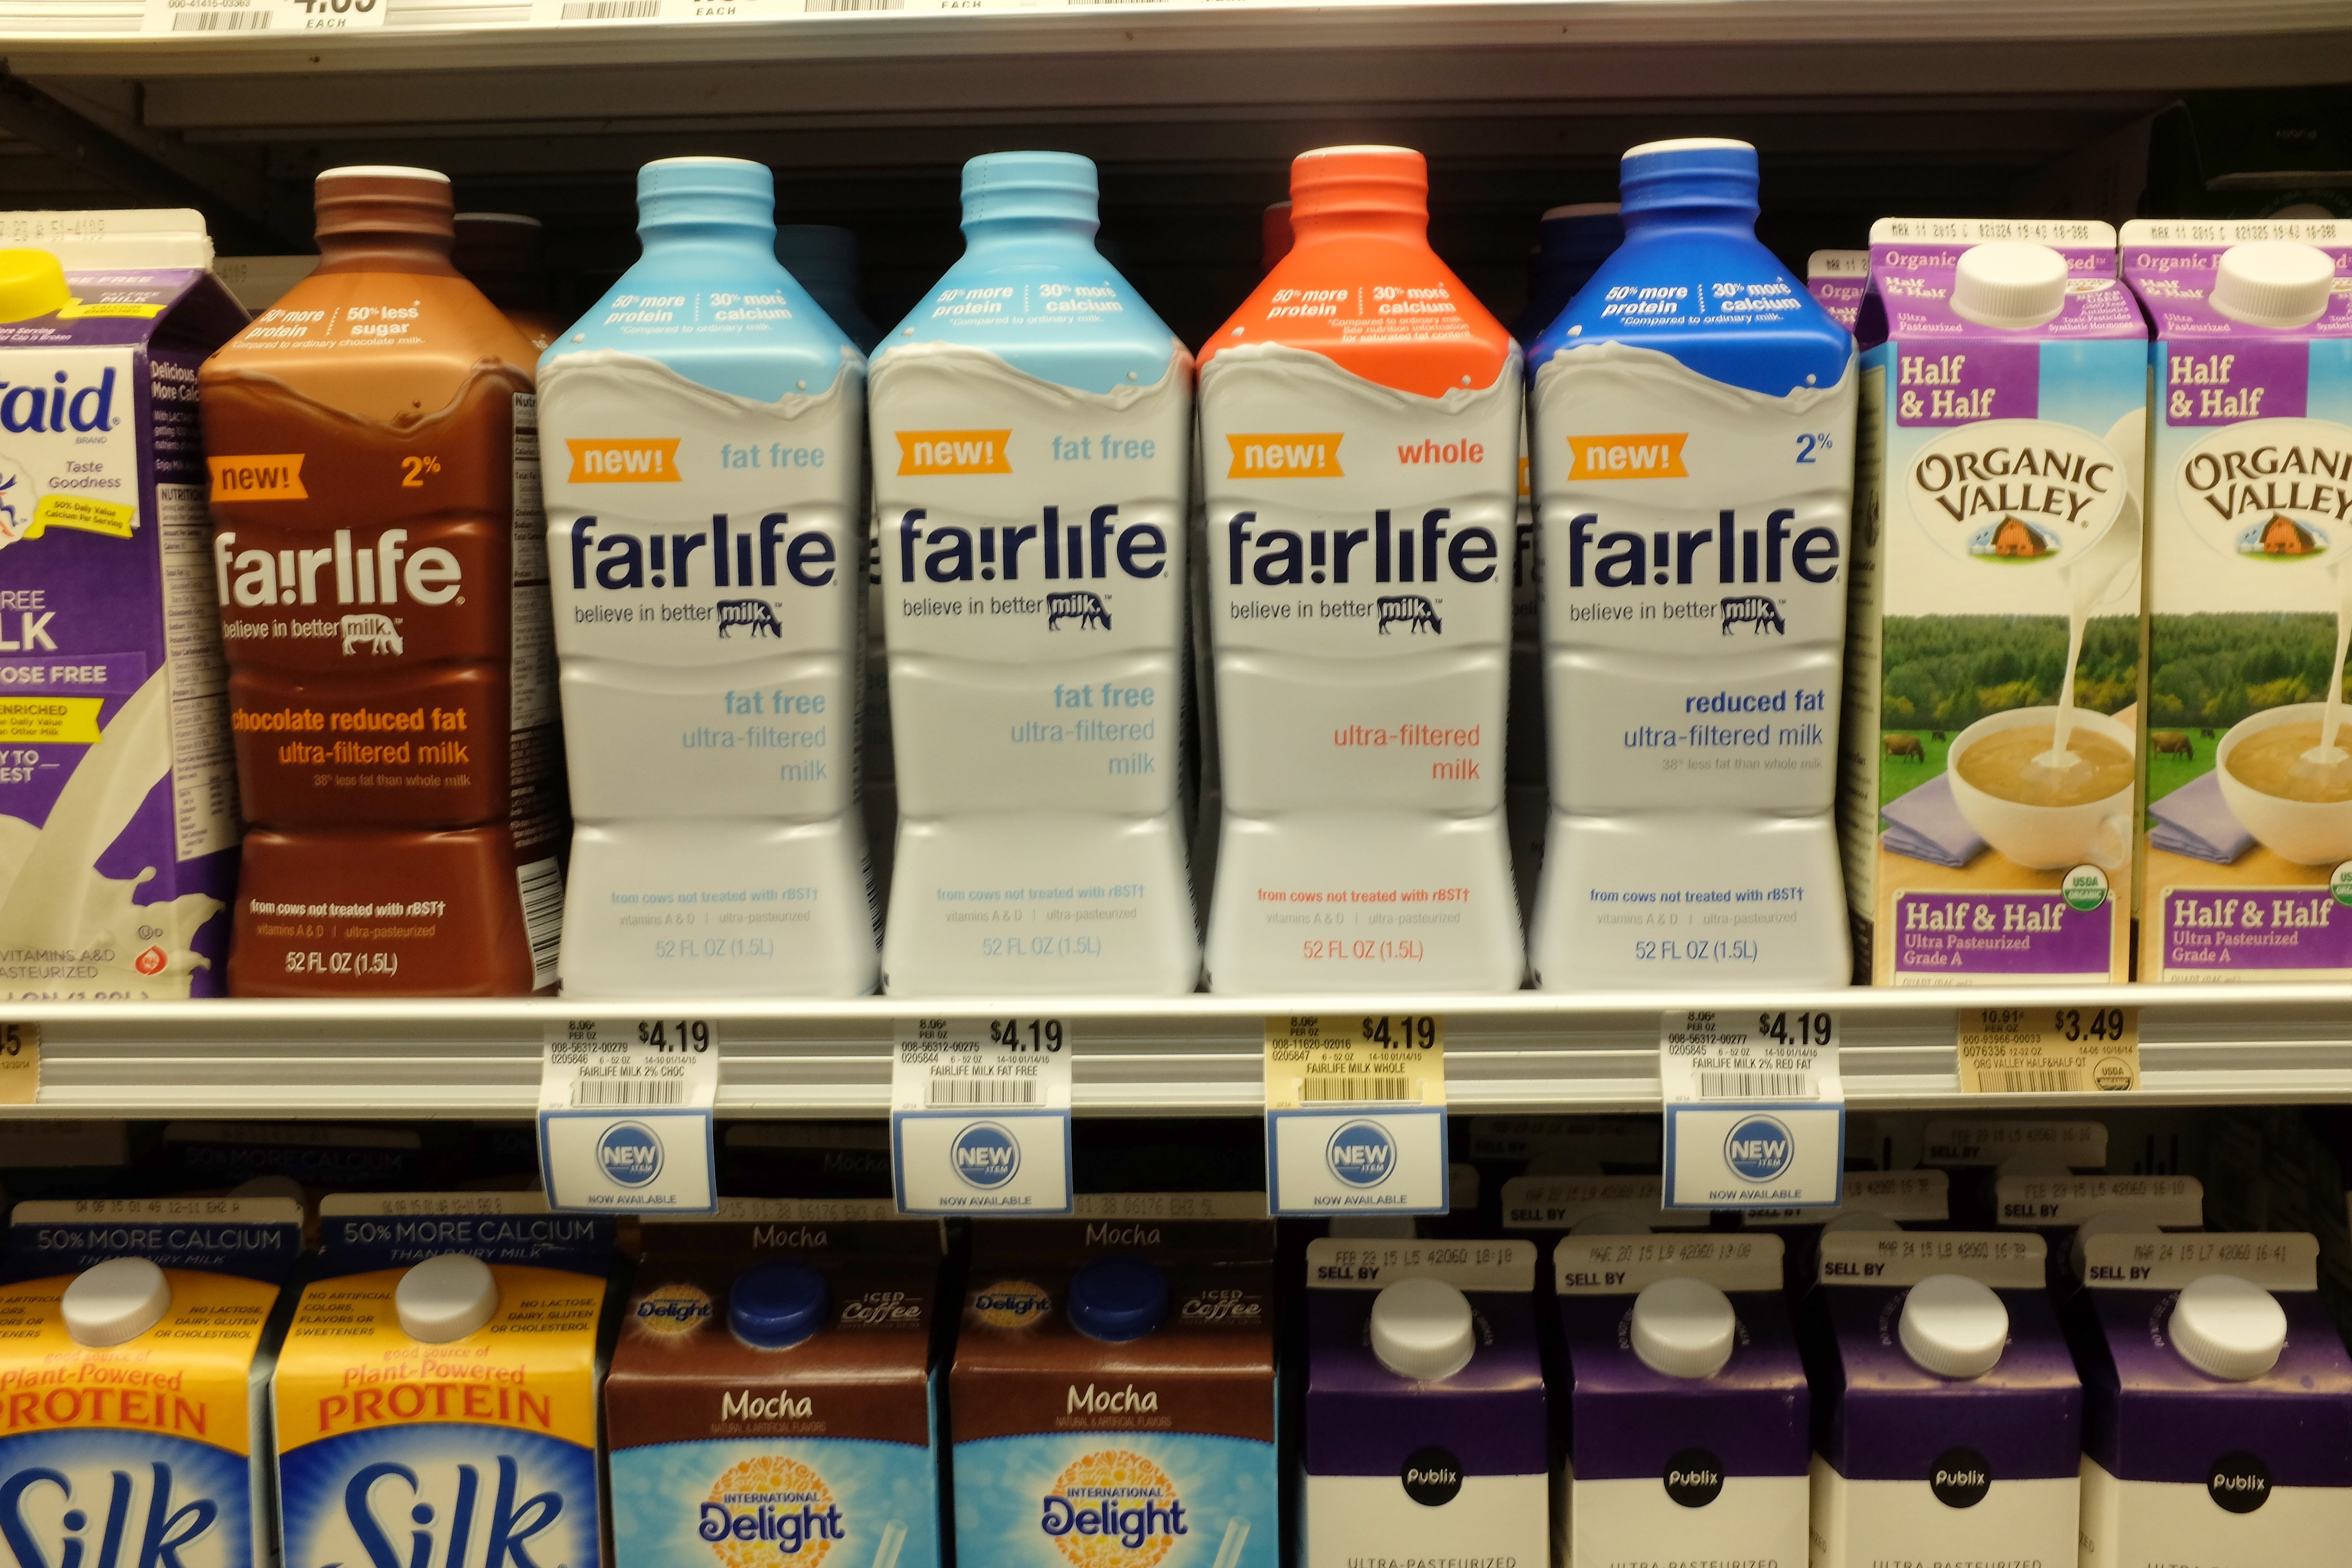 Coke Debuts New Reformulated Milk Called Fairlife, Boasting More Protein And Less Sugar